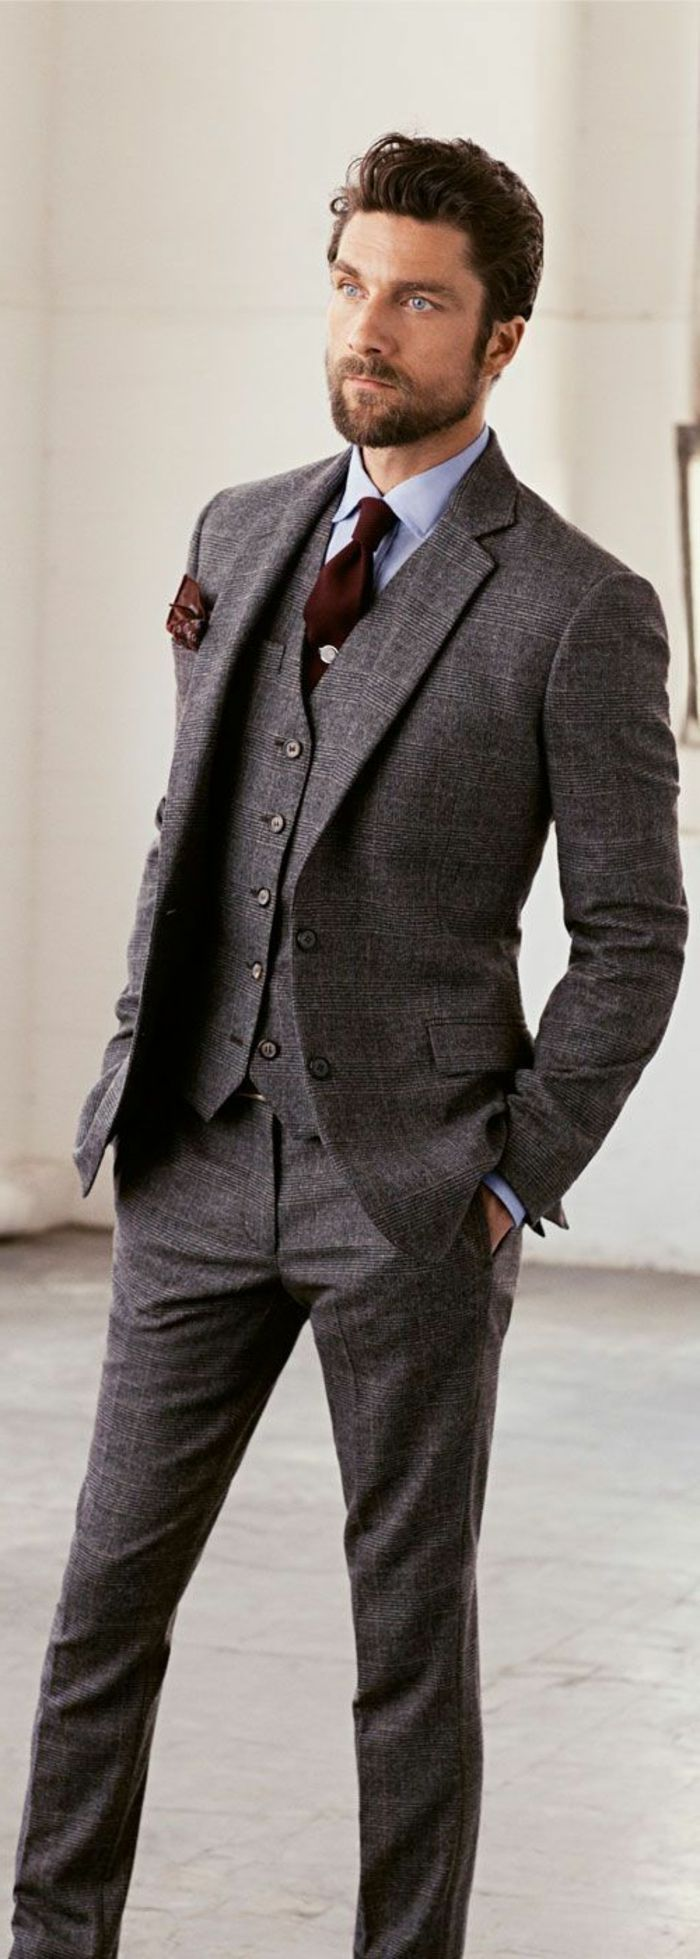 le costume gris anthracite homme en 40 photos mariage